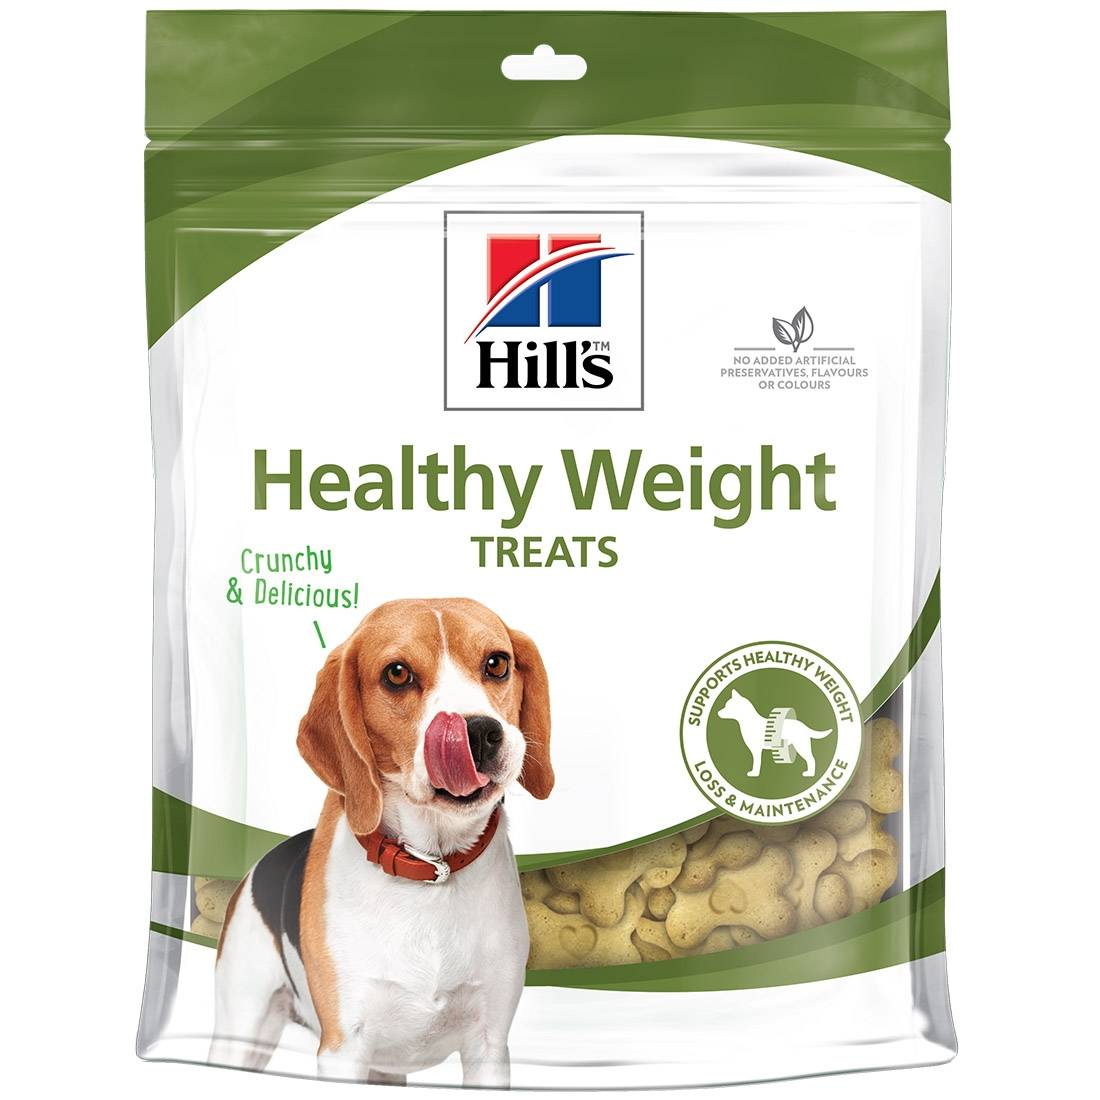 Hill's Science Plan Biscuits chien Hill's Healthy Weight Treats Contenance : 220 g